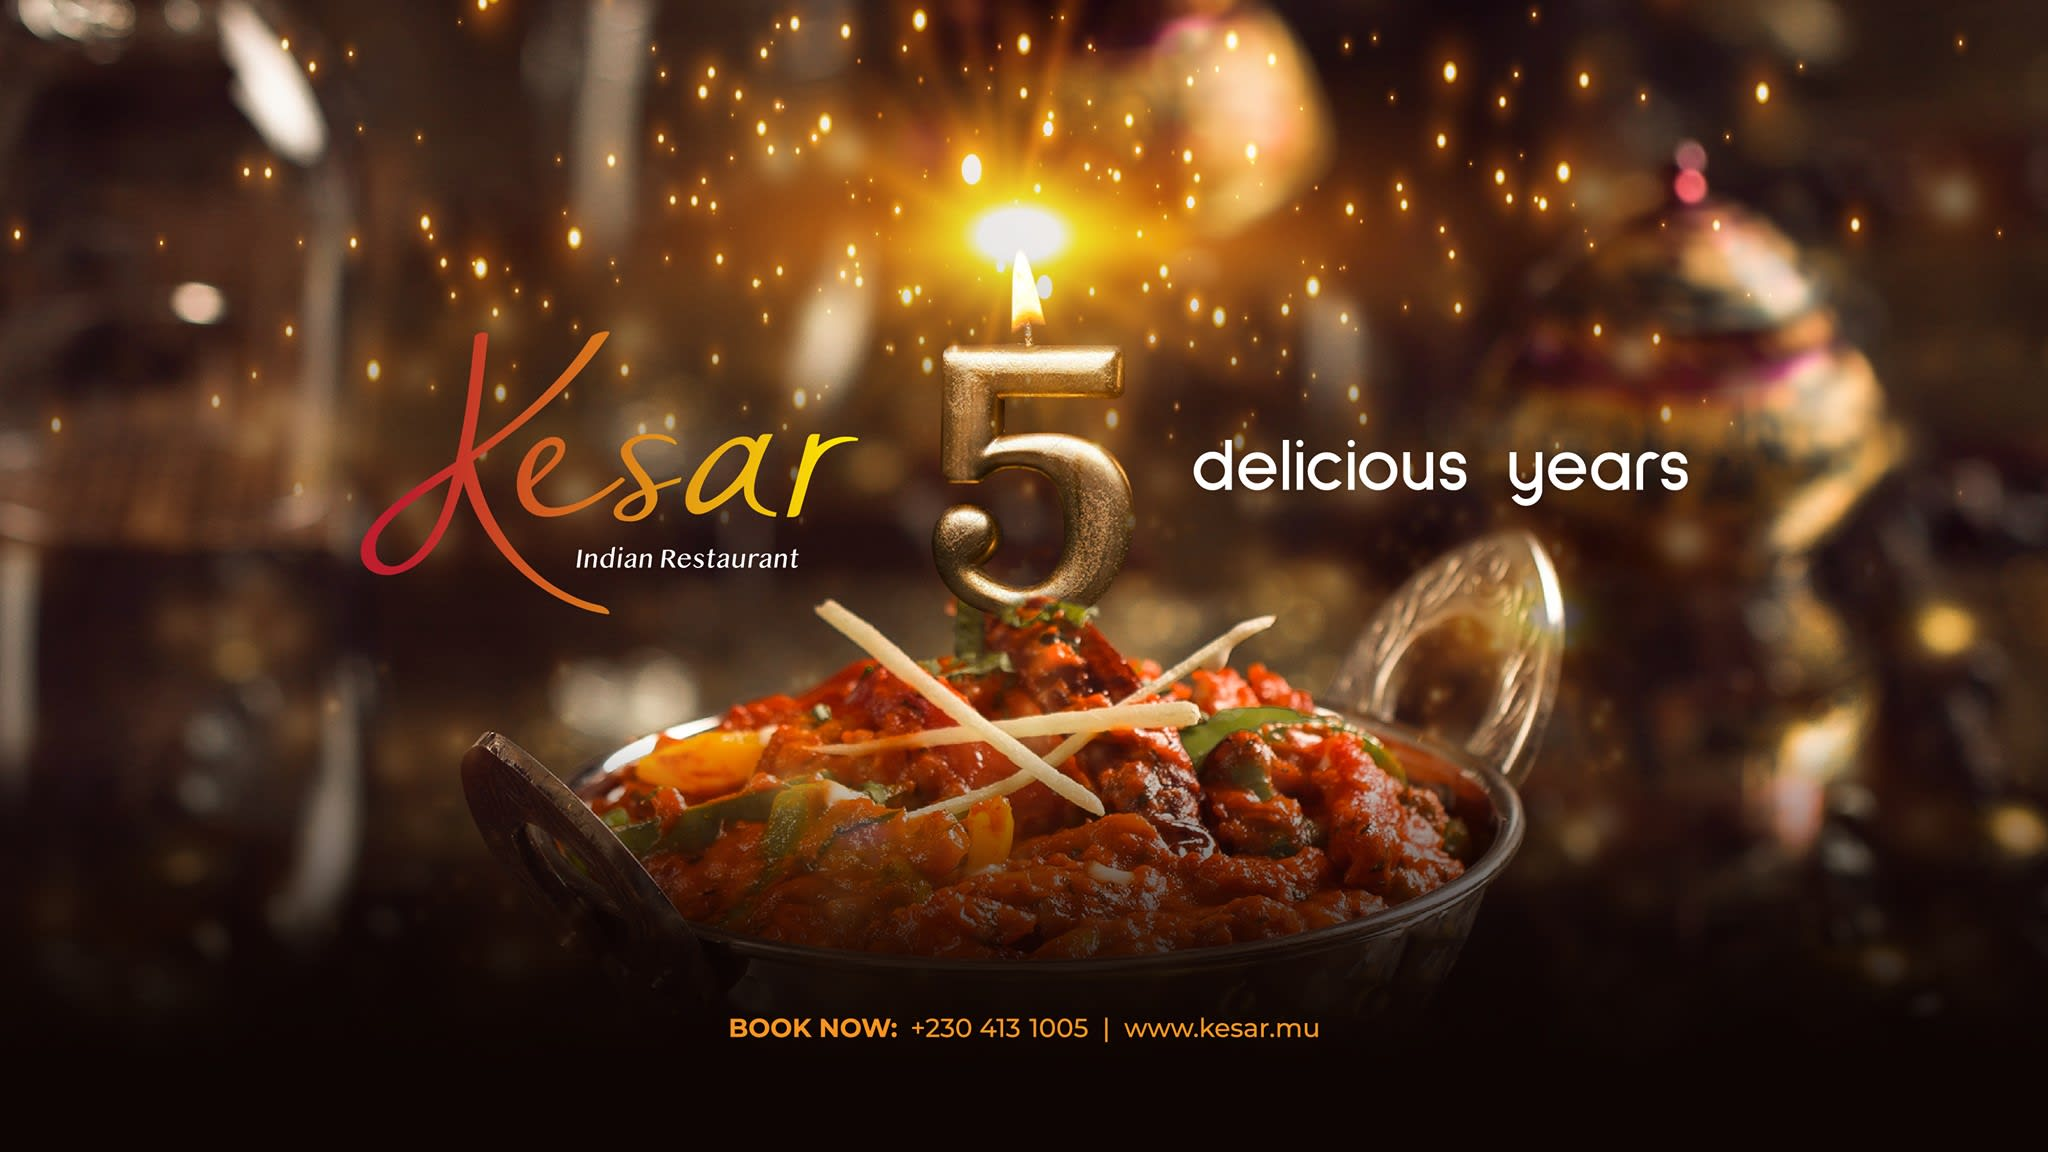 Kesar Indian Restaurant